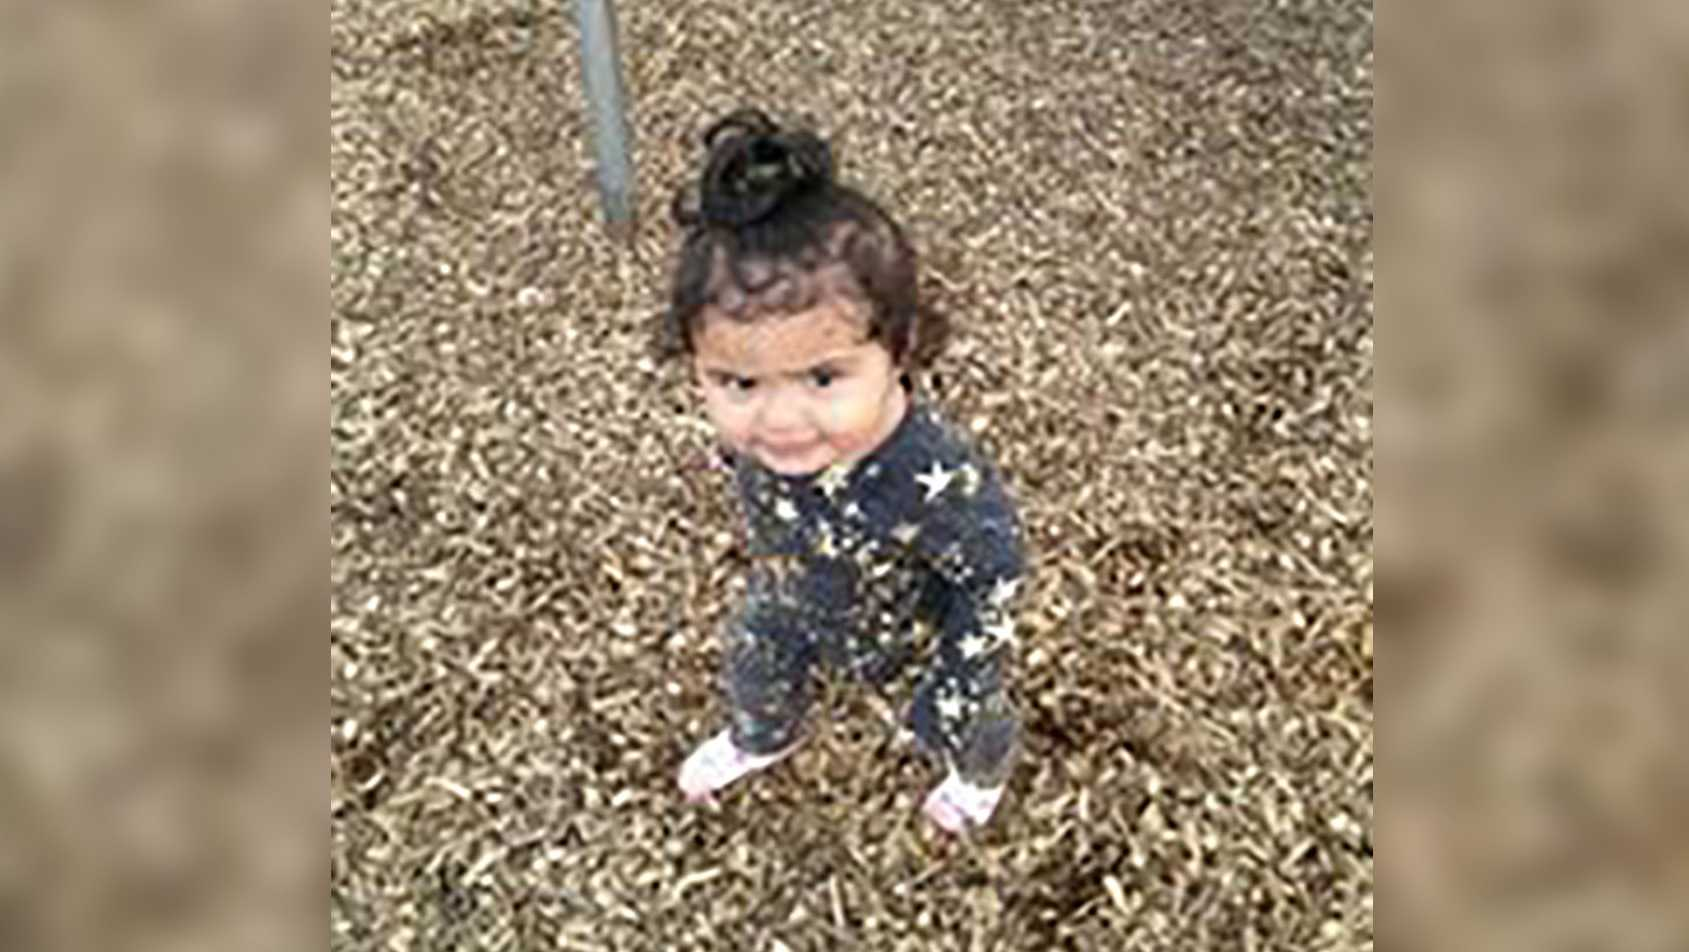 Amber Alert issued for 1-year-old Porterville girl who was abducted.